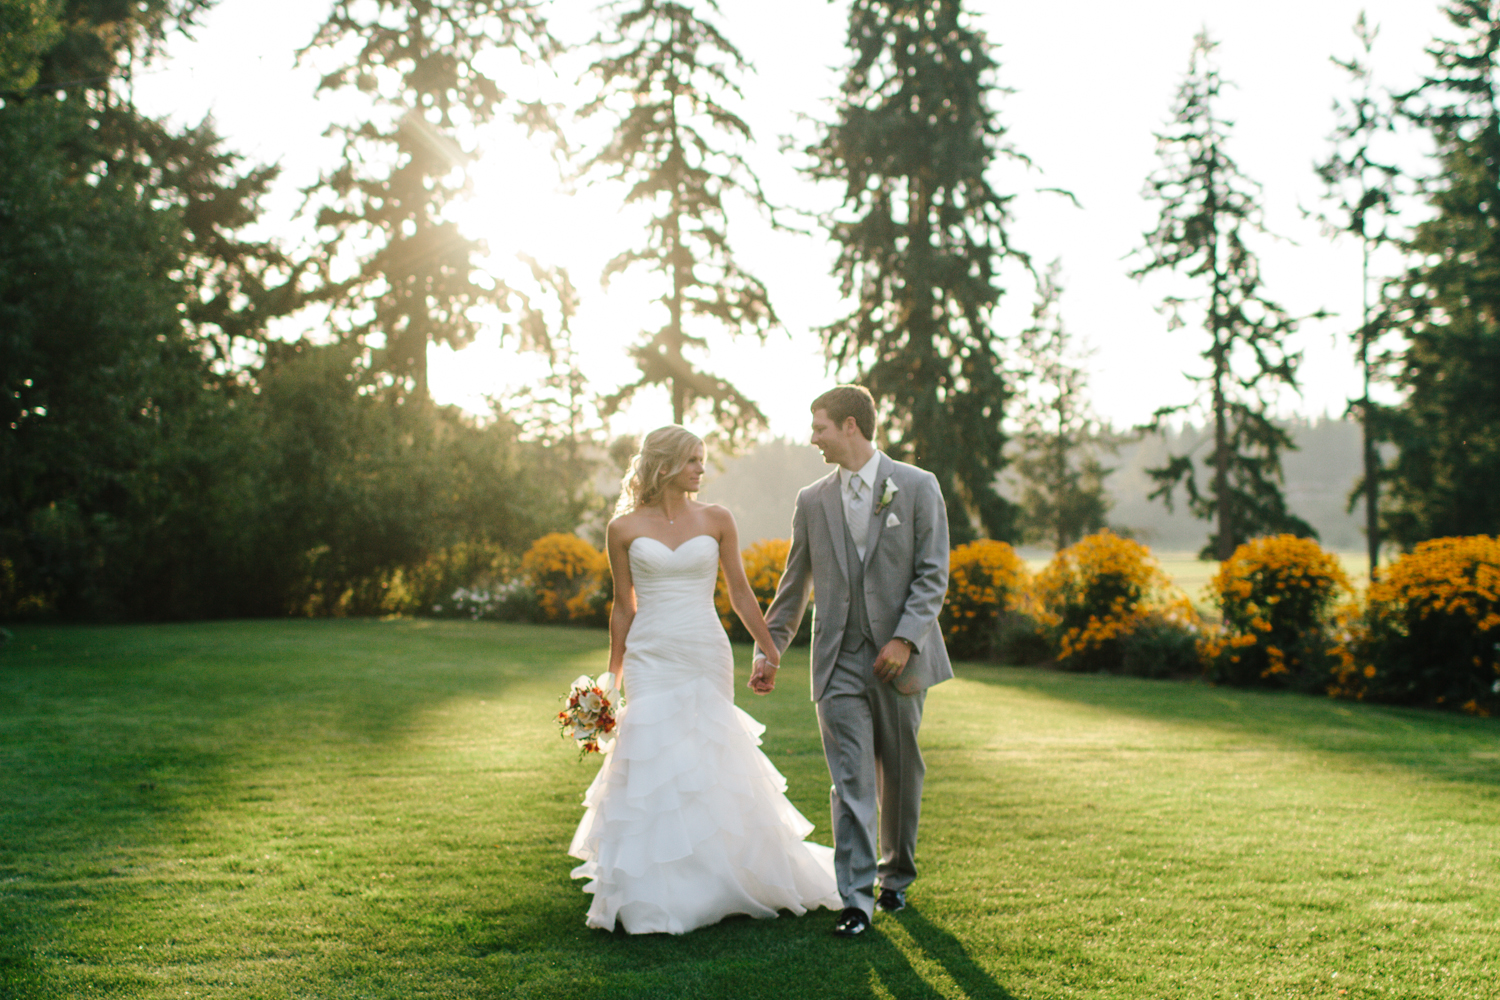 Jess Hunter Photography, Jessica Hunter, Seattle wedding photographer, washington state wedding photographer, rustic wedding, farm wedding, north florida wedding photographer, elopement photography, bride and groom portraits outdoors, grooms ring